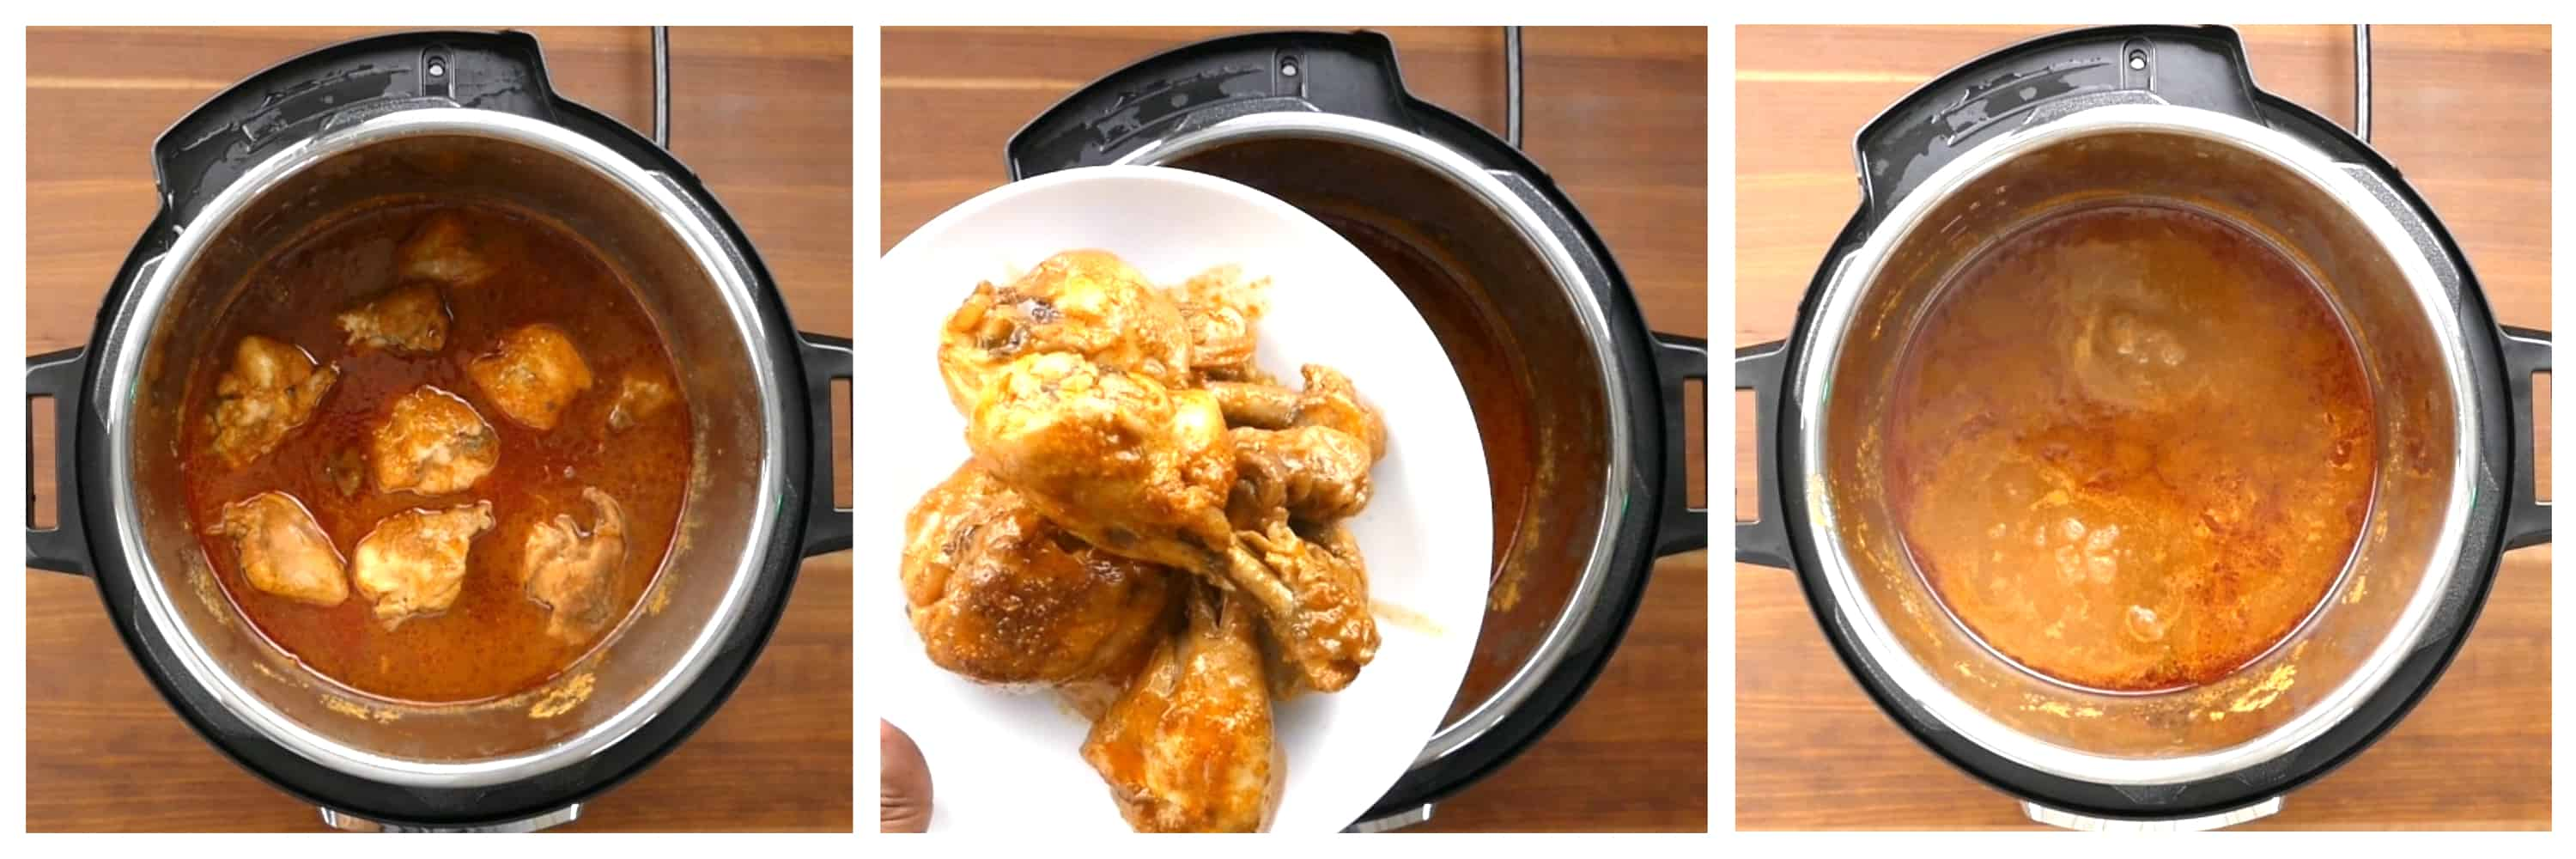 Instant Pot Korean Chicken Instructions 3 collage - cooked chicken, removed to a plate, reduce the sauce by boiling - Paint the Kitchen Red